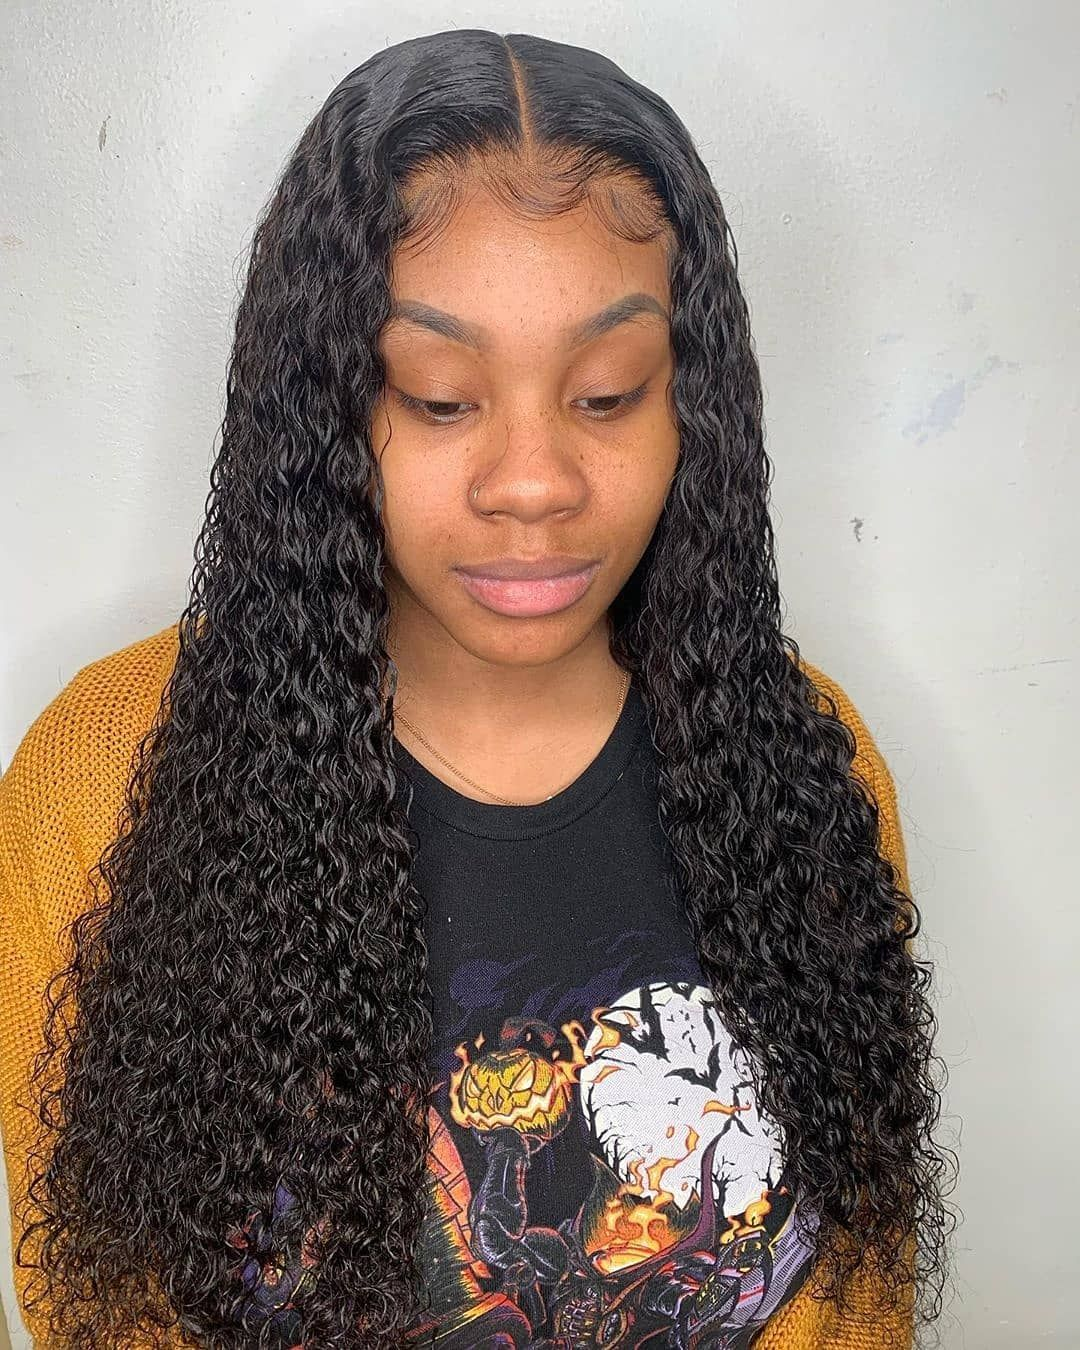 Lace Front Wigs Black Curly Hair Wholesale Cambodian Hair Gray Afro Wigs Lace Tint